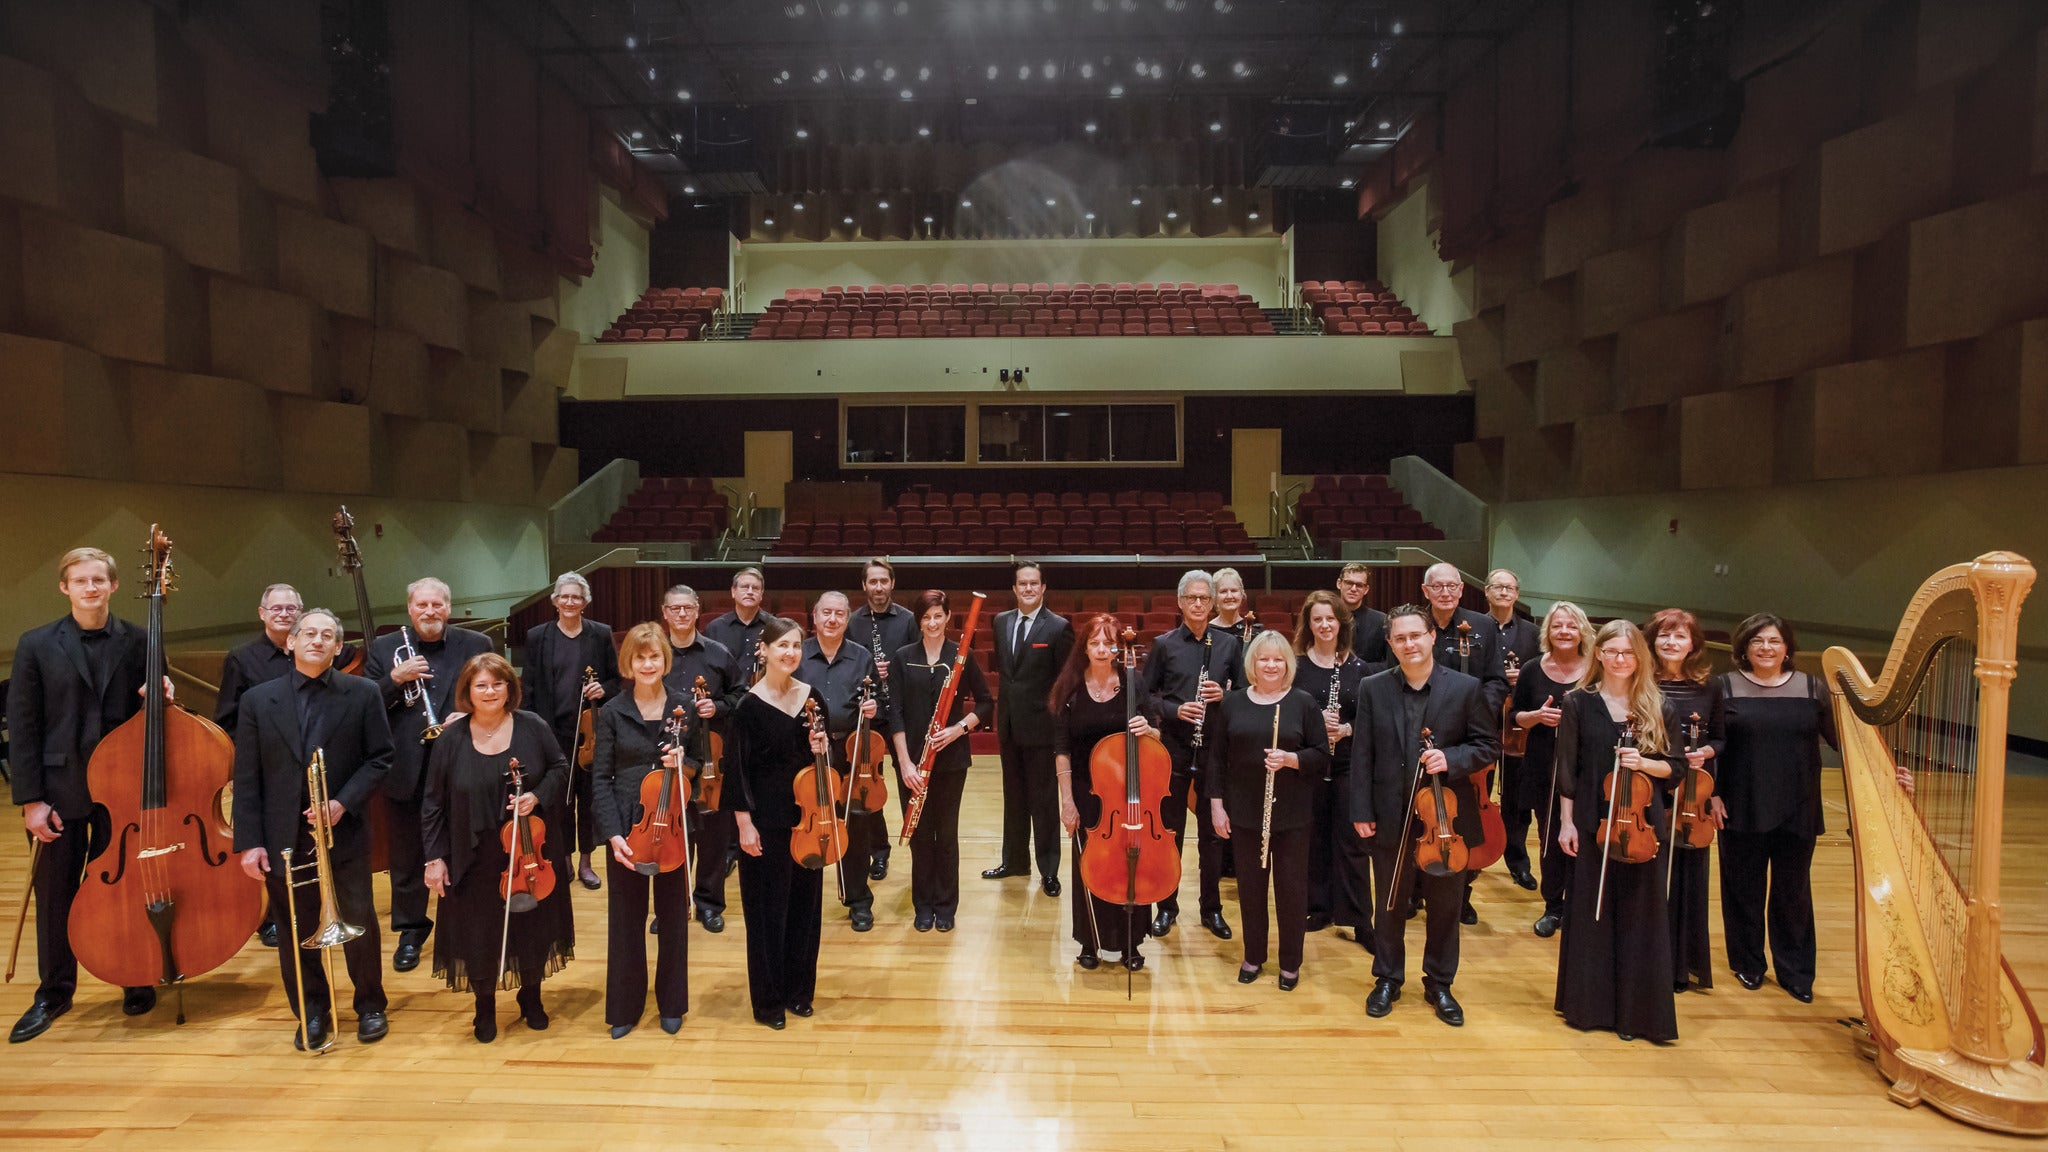 Indianapolis Chamber Orchestra: Classic American